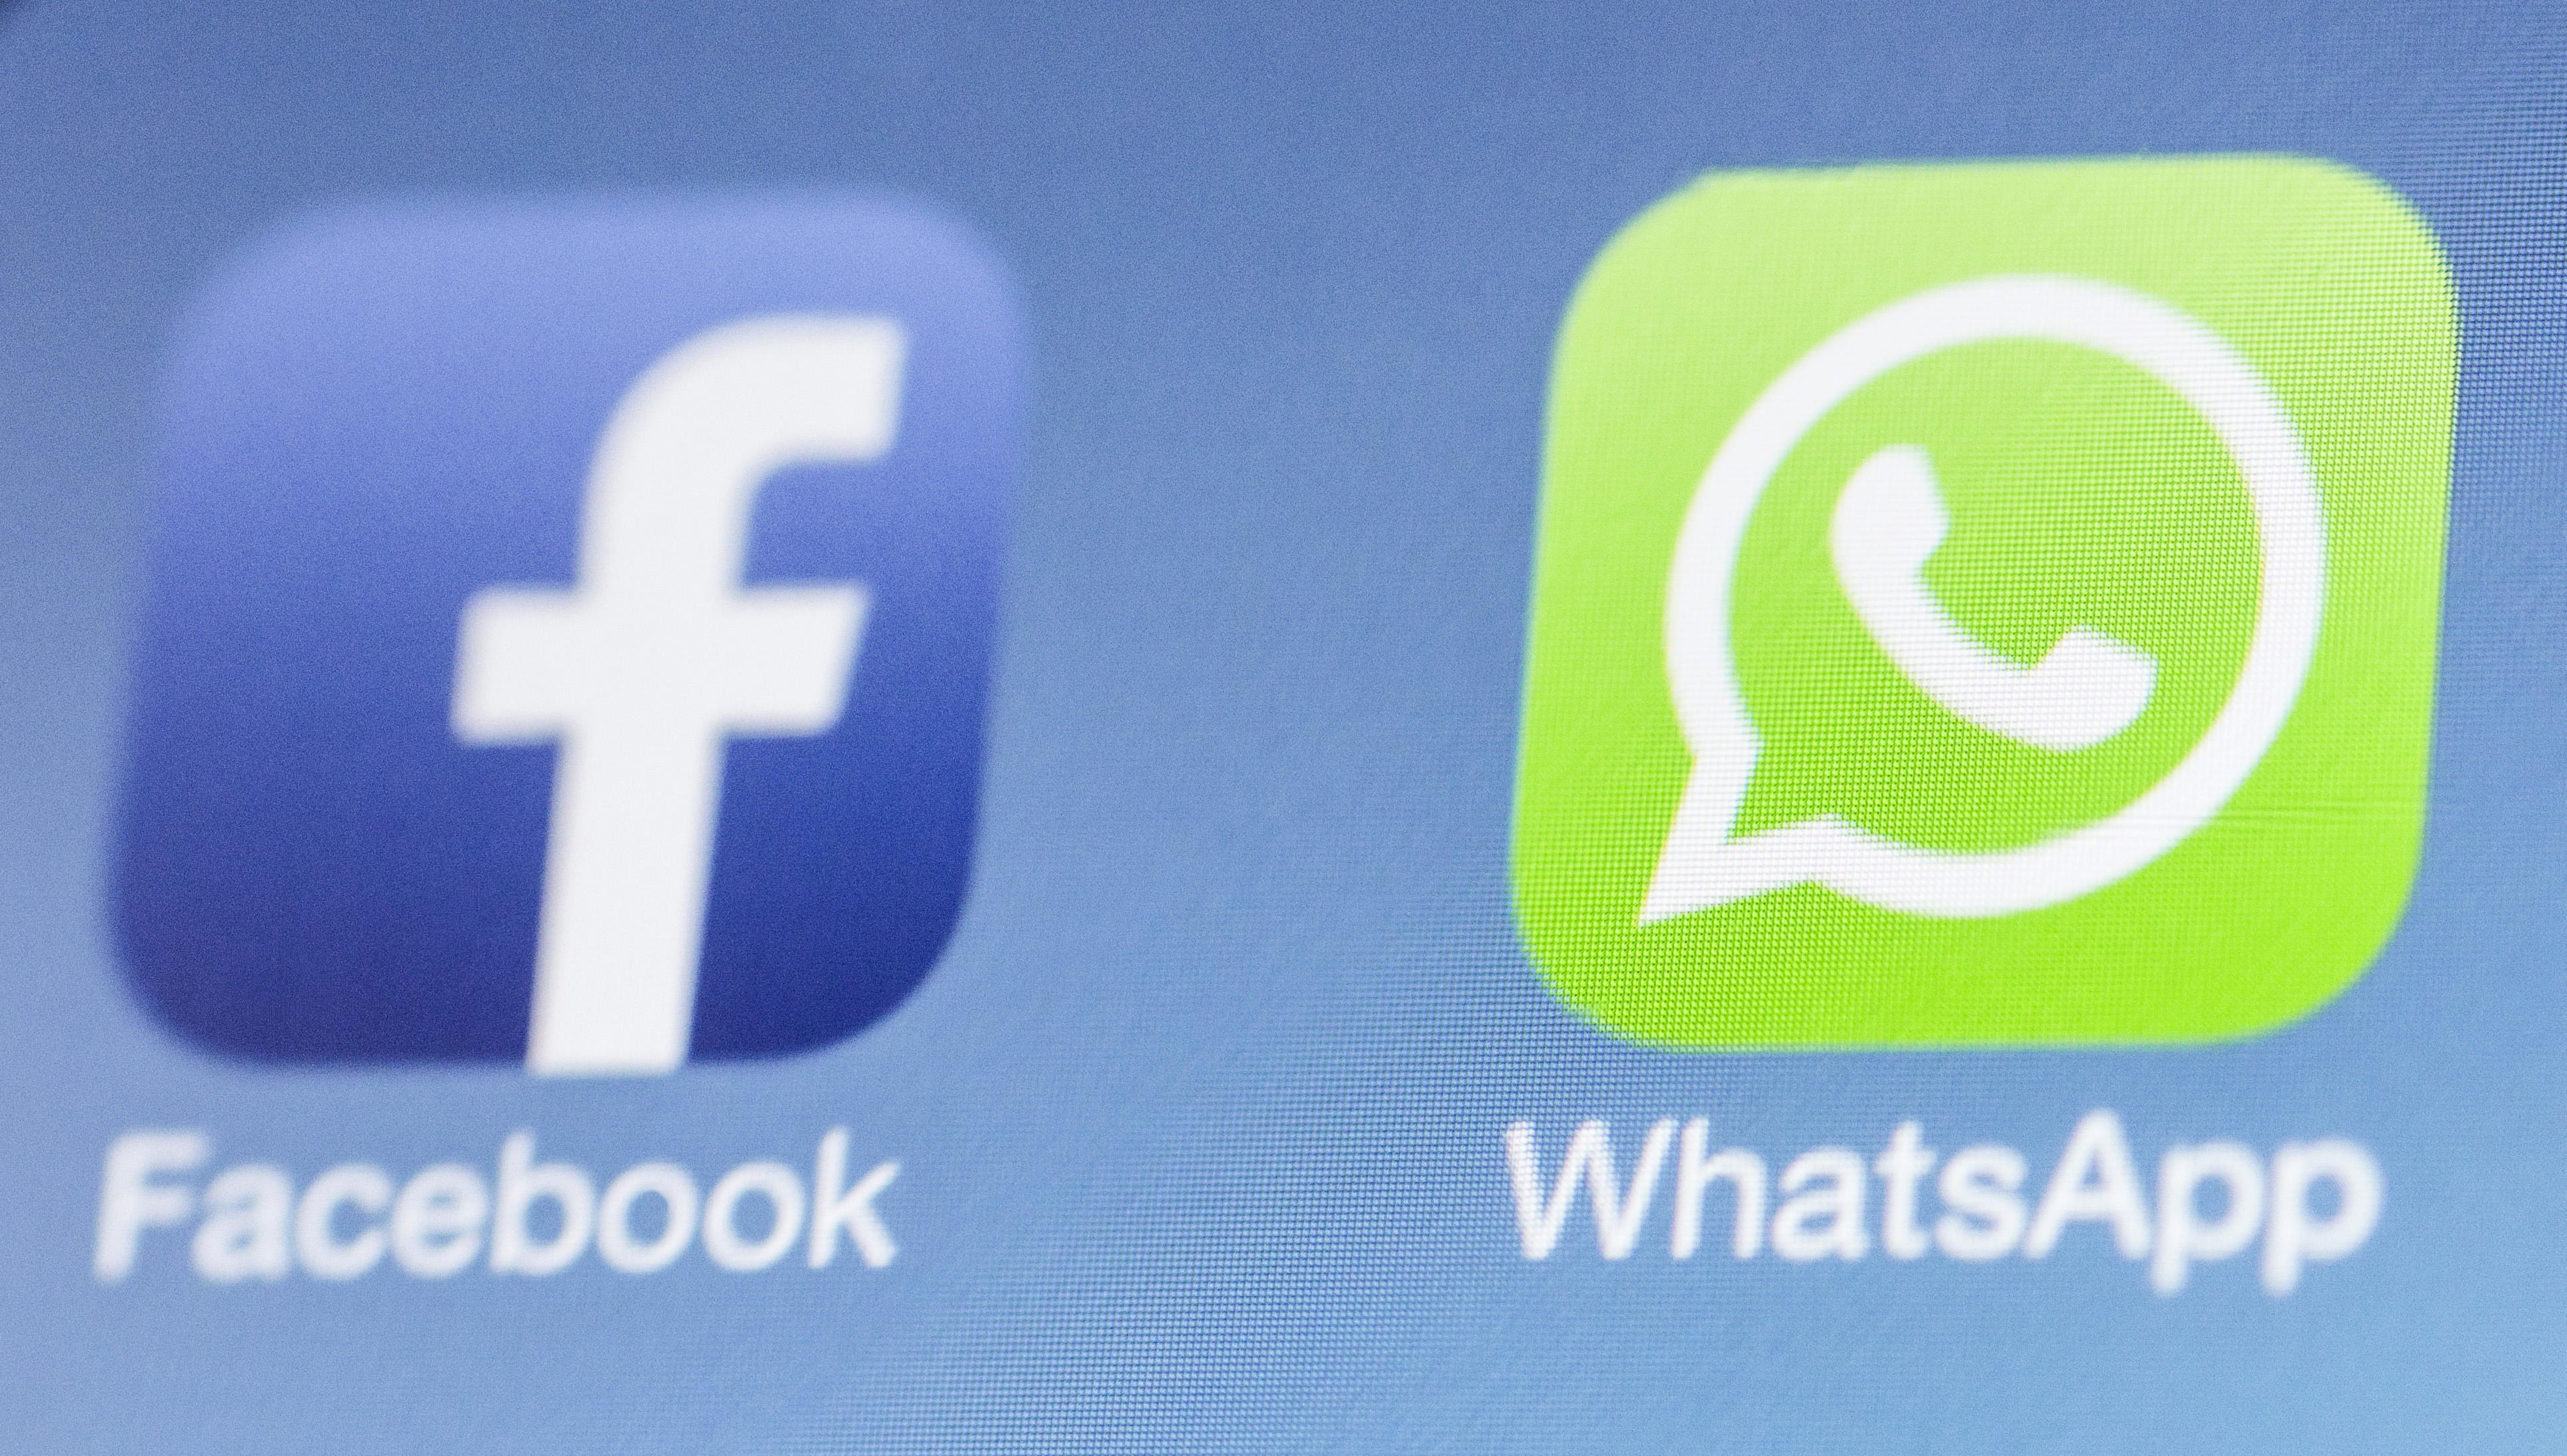 Facebook next to the WhatsApp logo on iPhone on February 25, 2014 in Berlin, Germany.